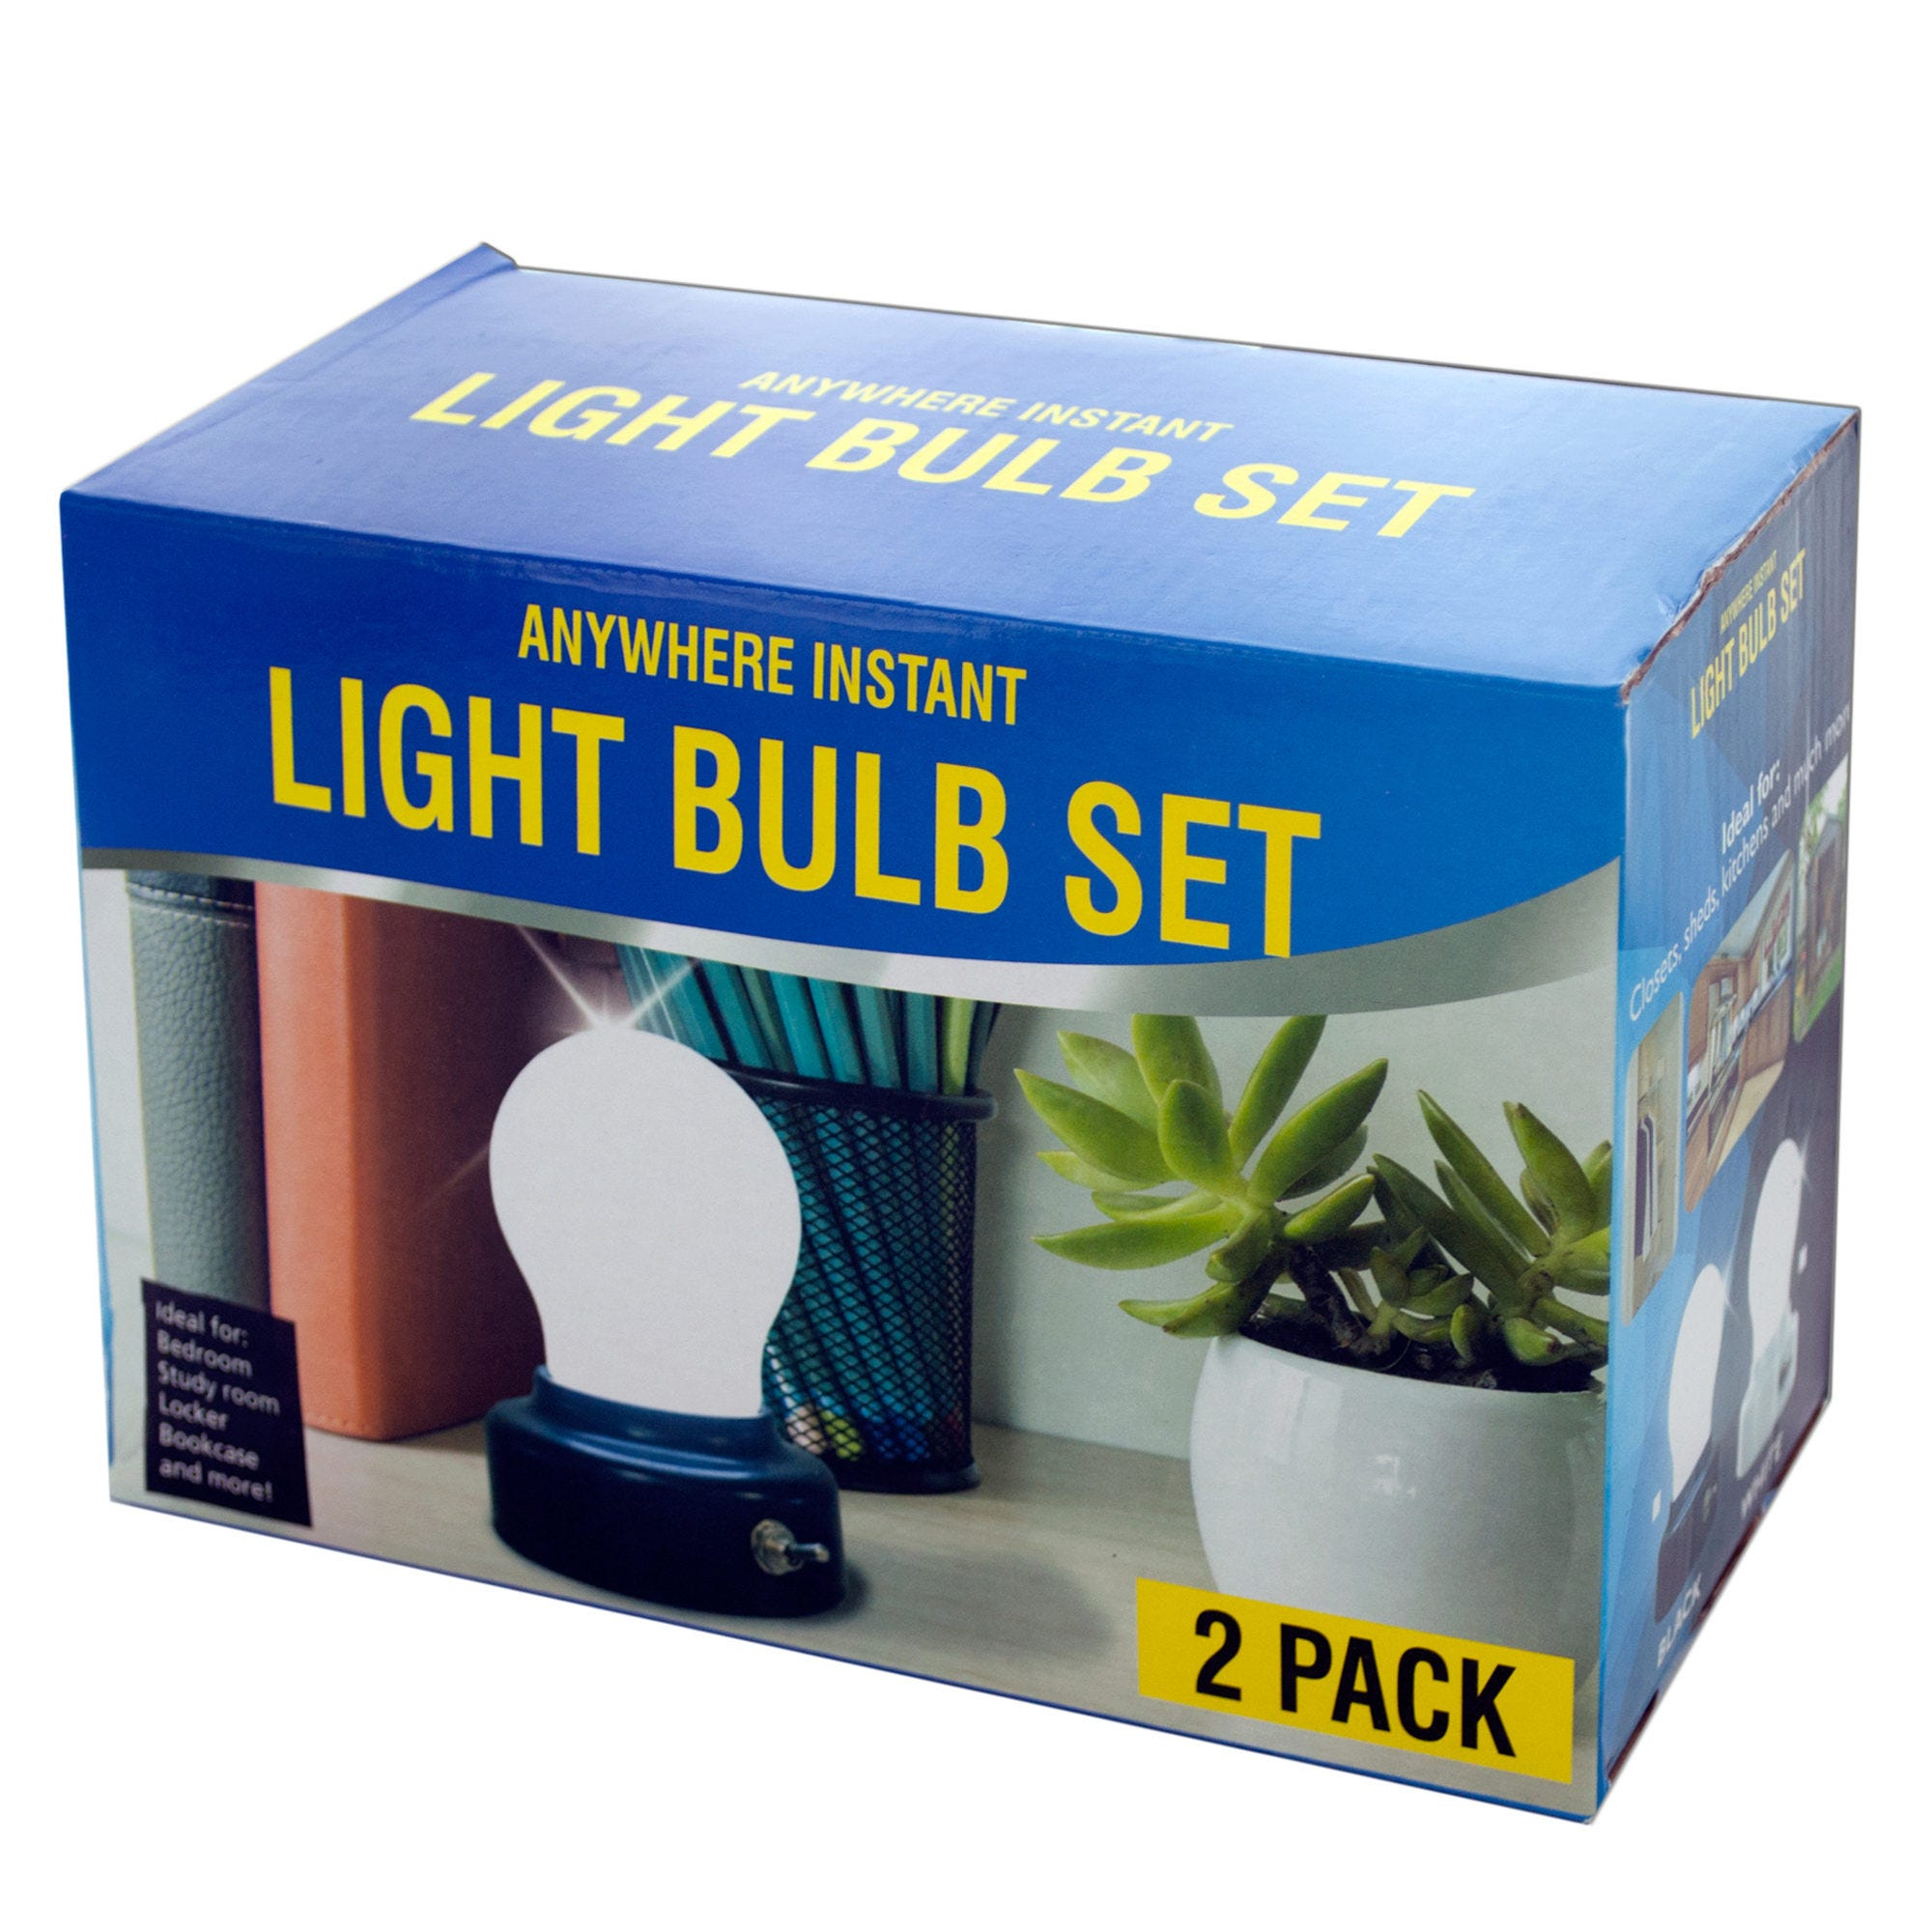 Anywhere Instant LIGHT BULBS with Magnetic Bases- Qty 6